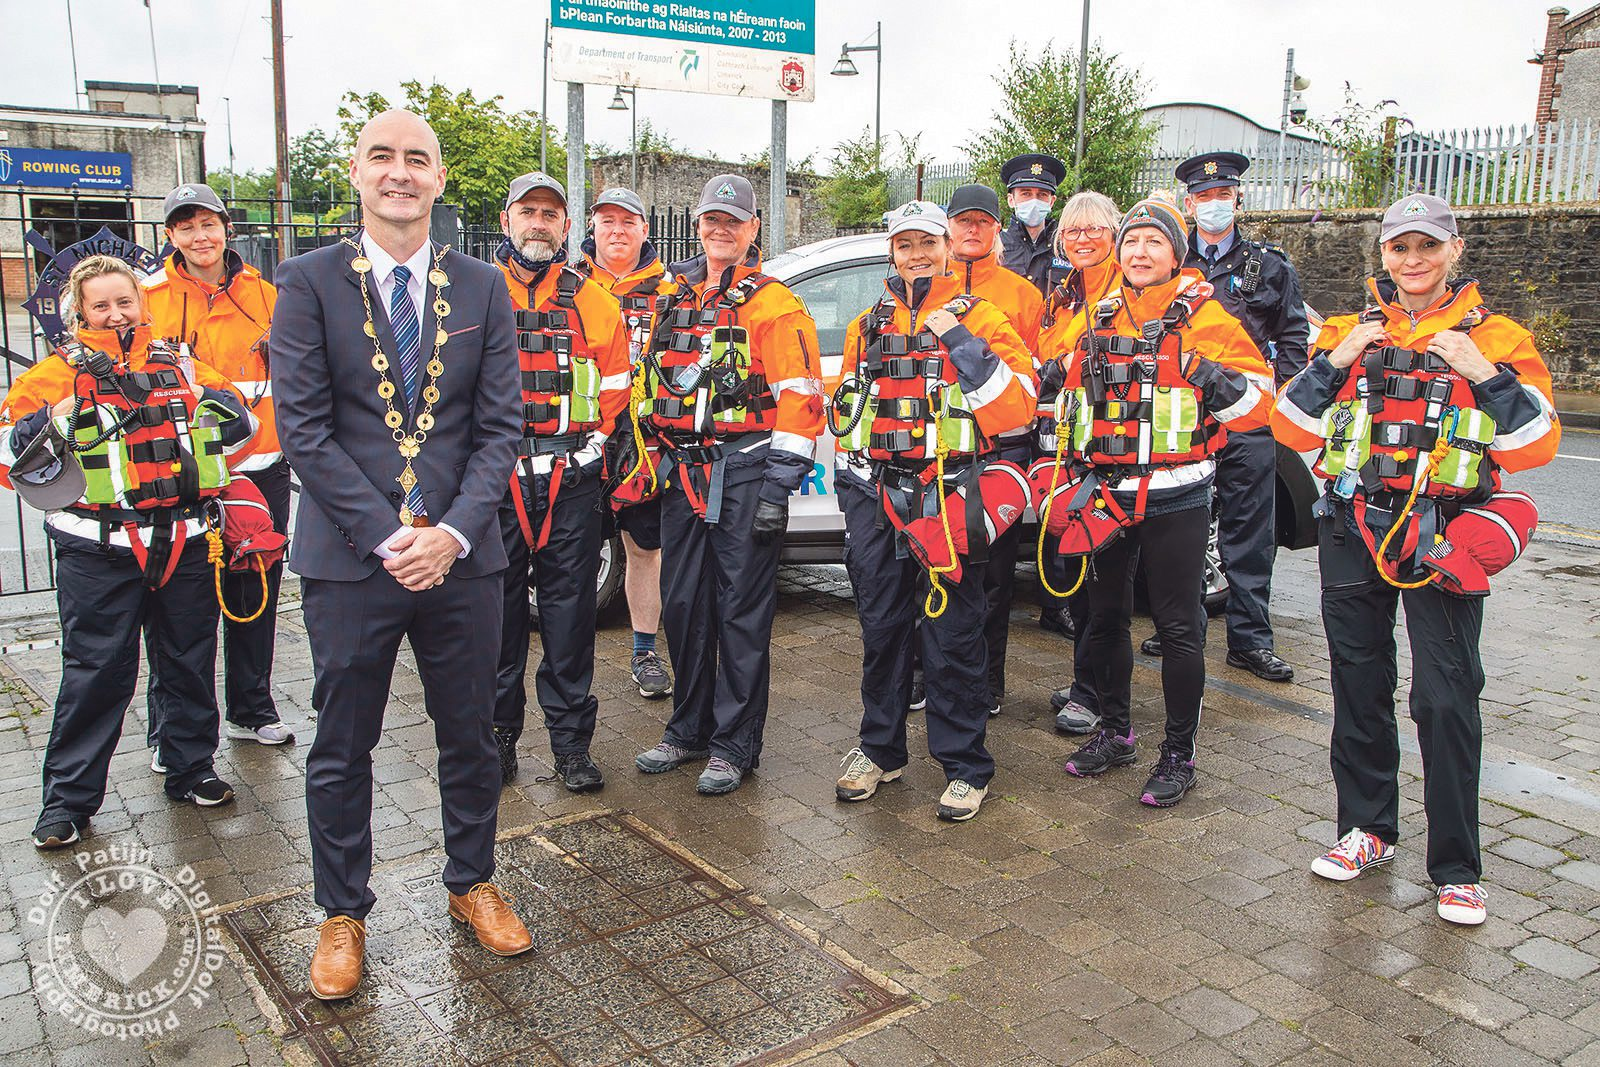 Limerick Suicide Watch Outreach Service – The team will visit different communities once a week to reach out to more people and help raise awareness about mental health and suicide. Picture: Farhan Saeed/ilovelimerick